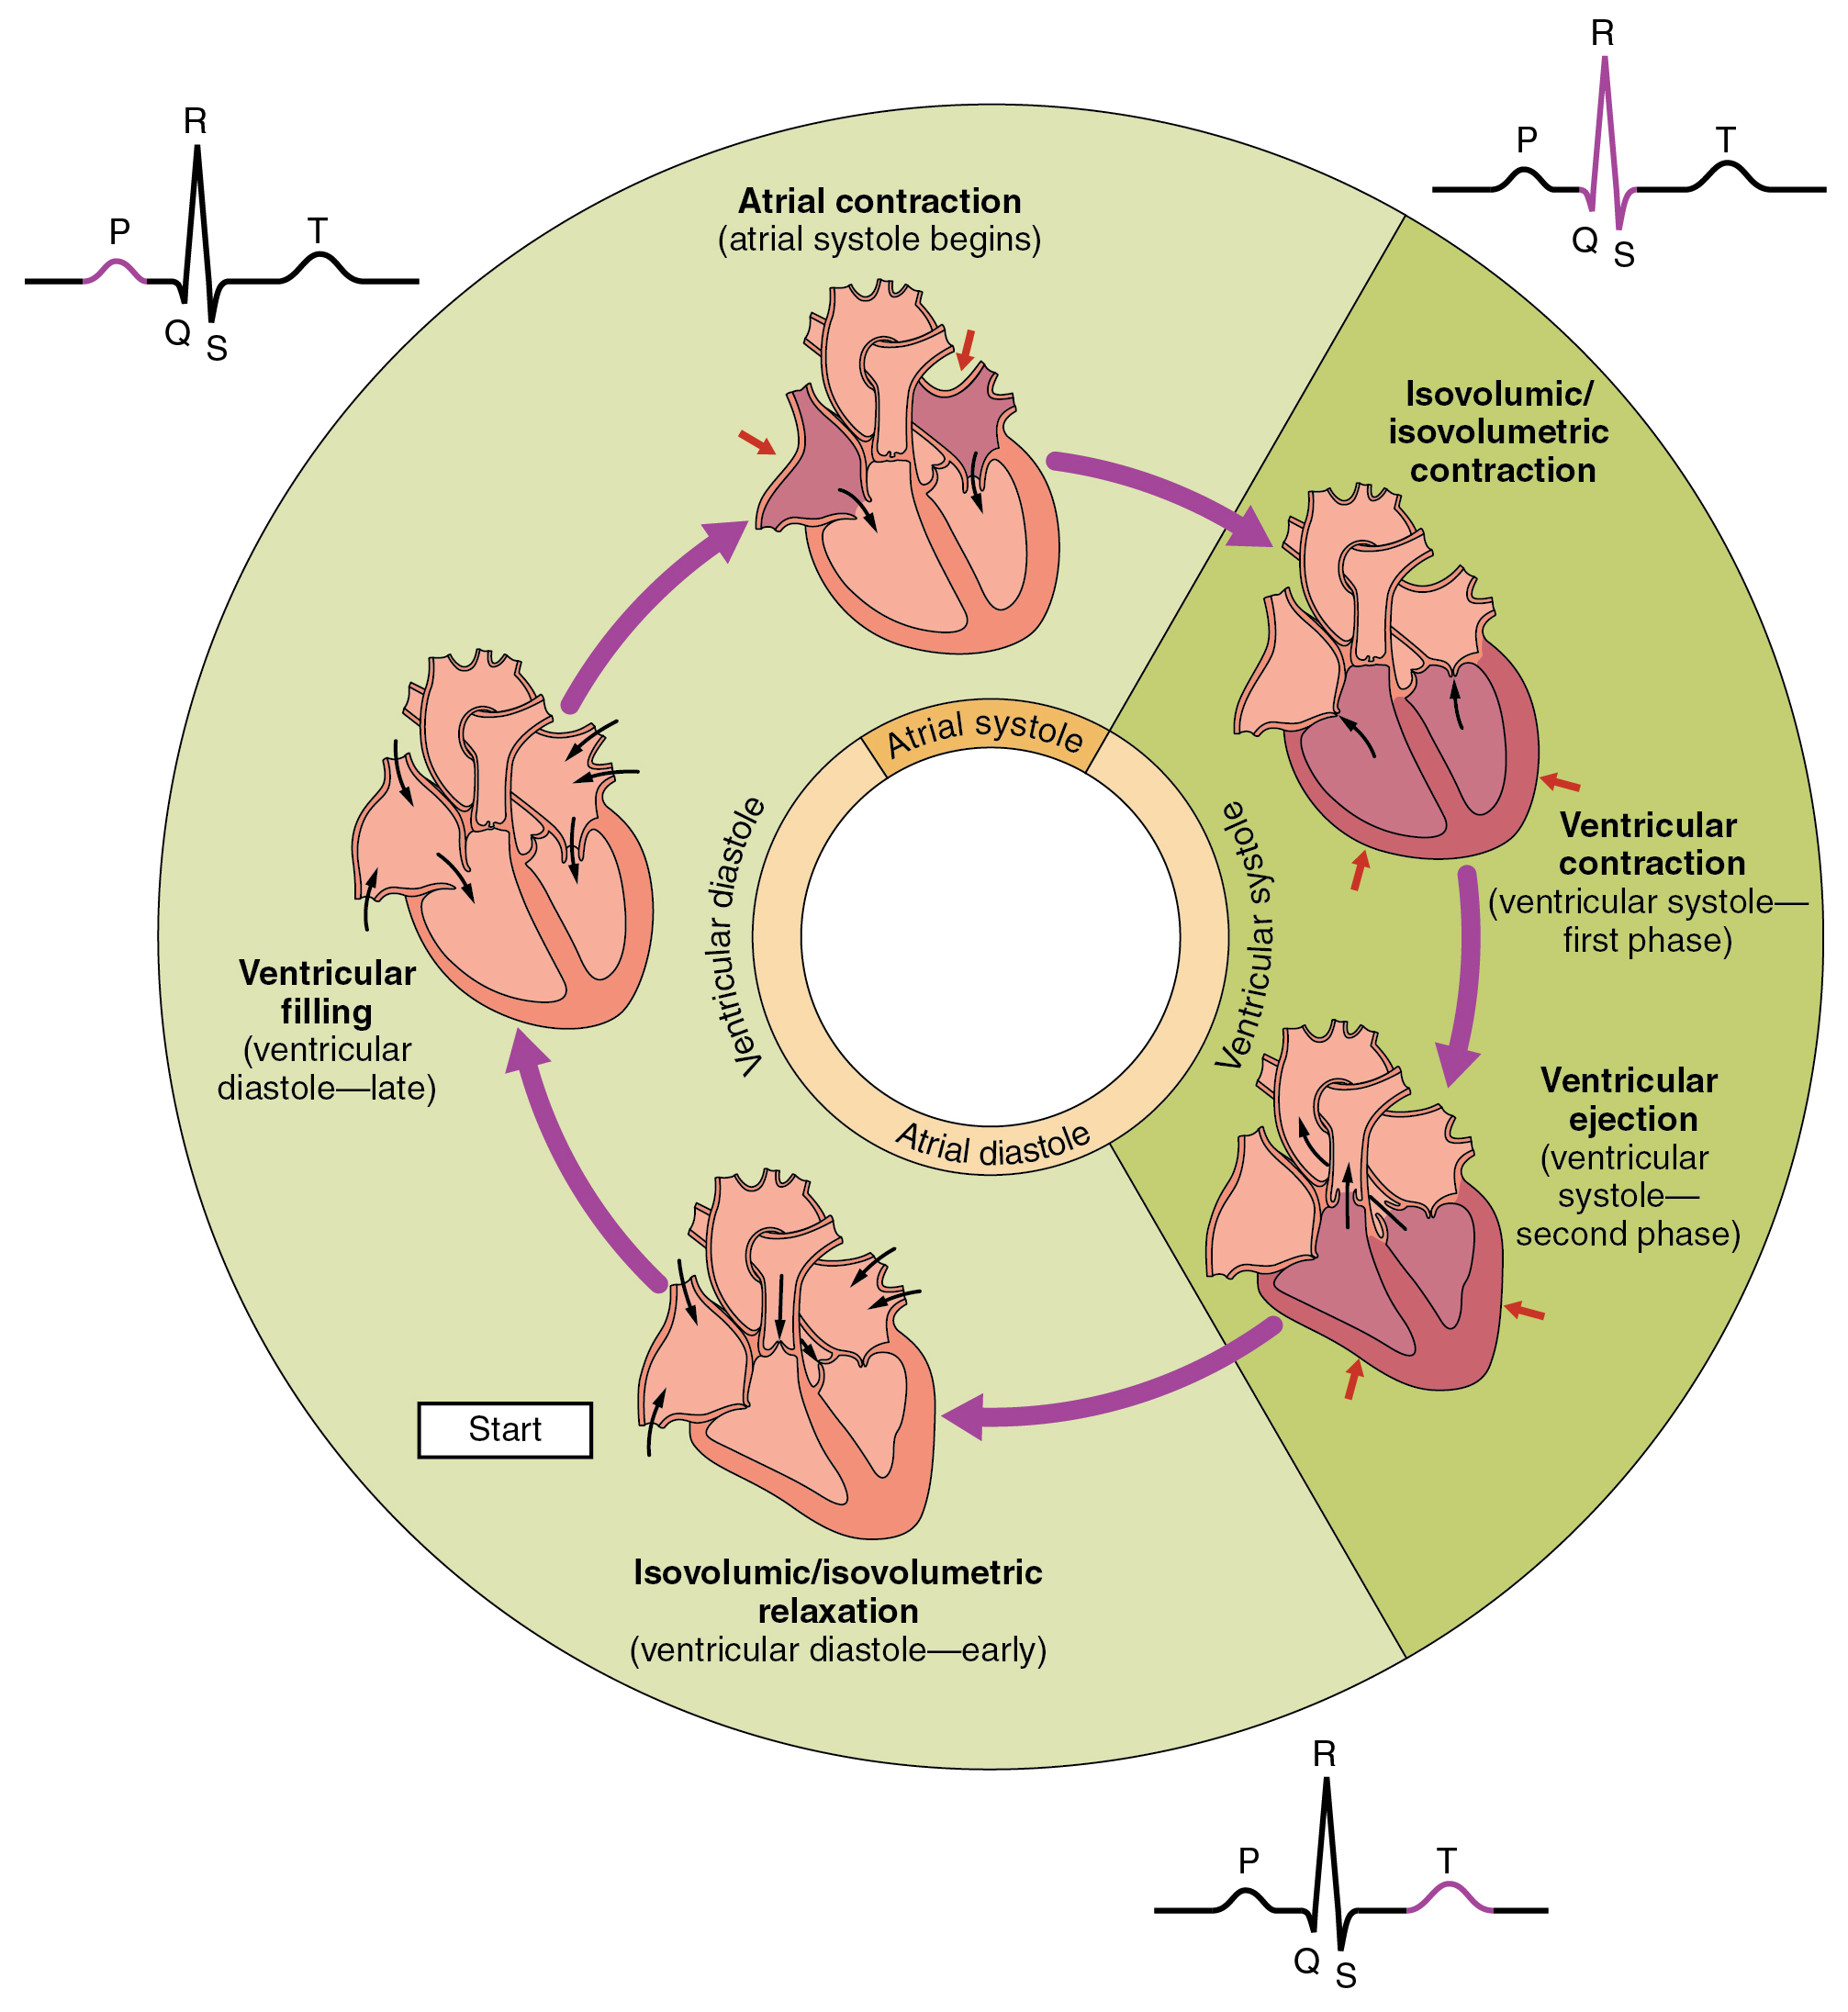 This pie chart shows the different phases of the cardiac cycle and details the atrial and ventricular stages.